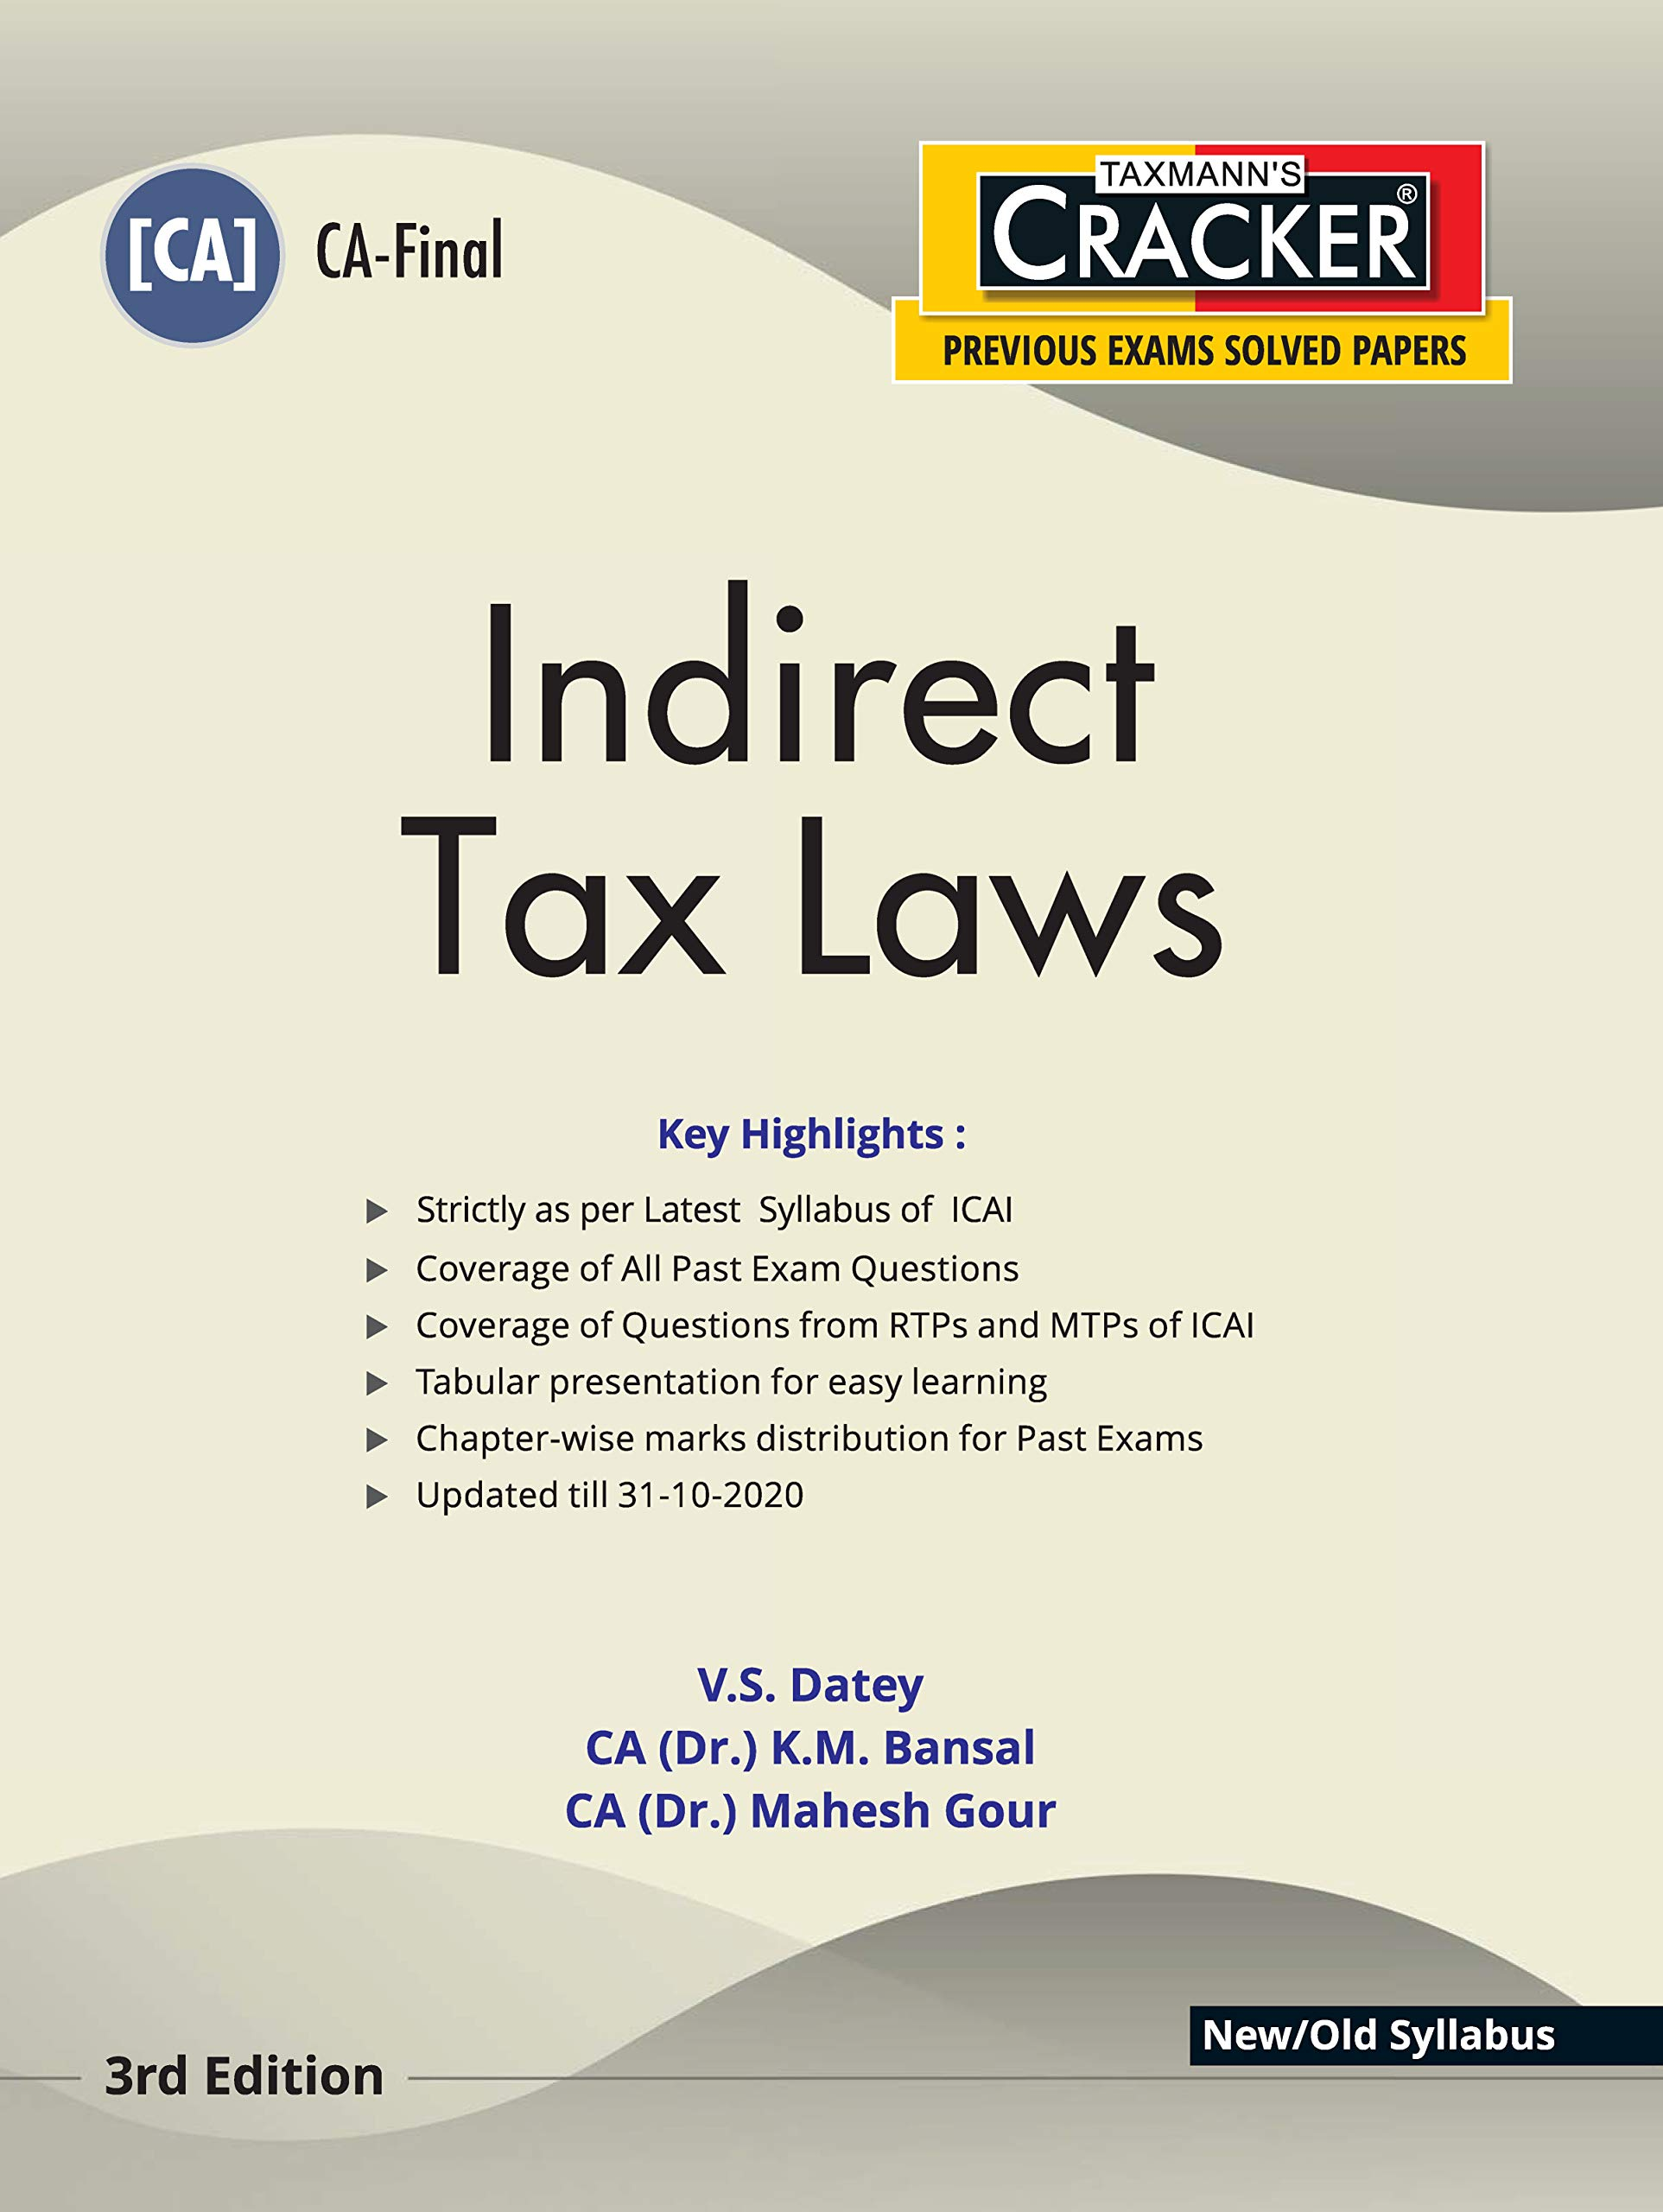 Taxmann's CRACKER – Indirect Tax Laws   CA-Final – New/Old Syllabus   Updated till 31-10-2020   3rd Edition